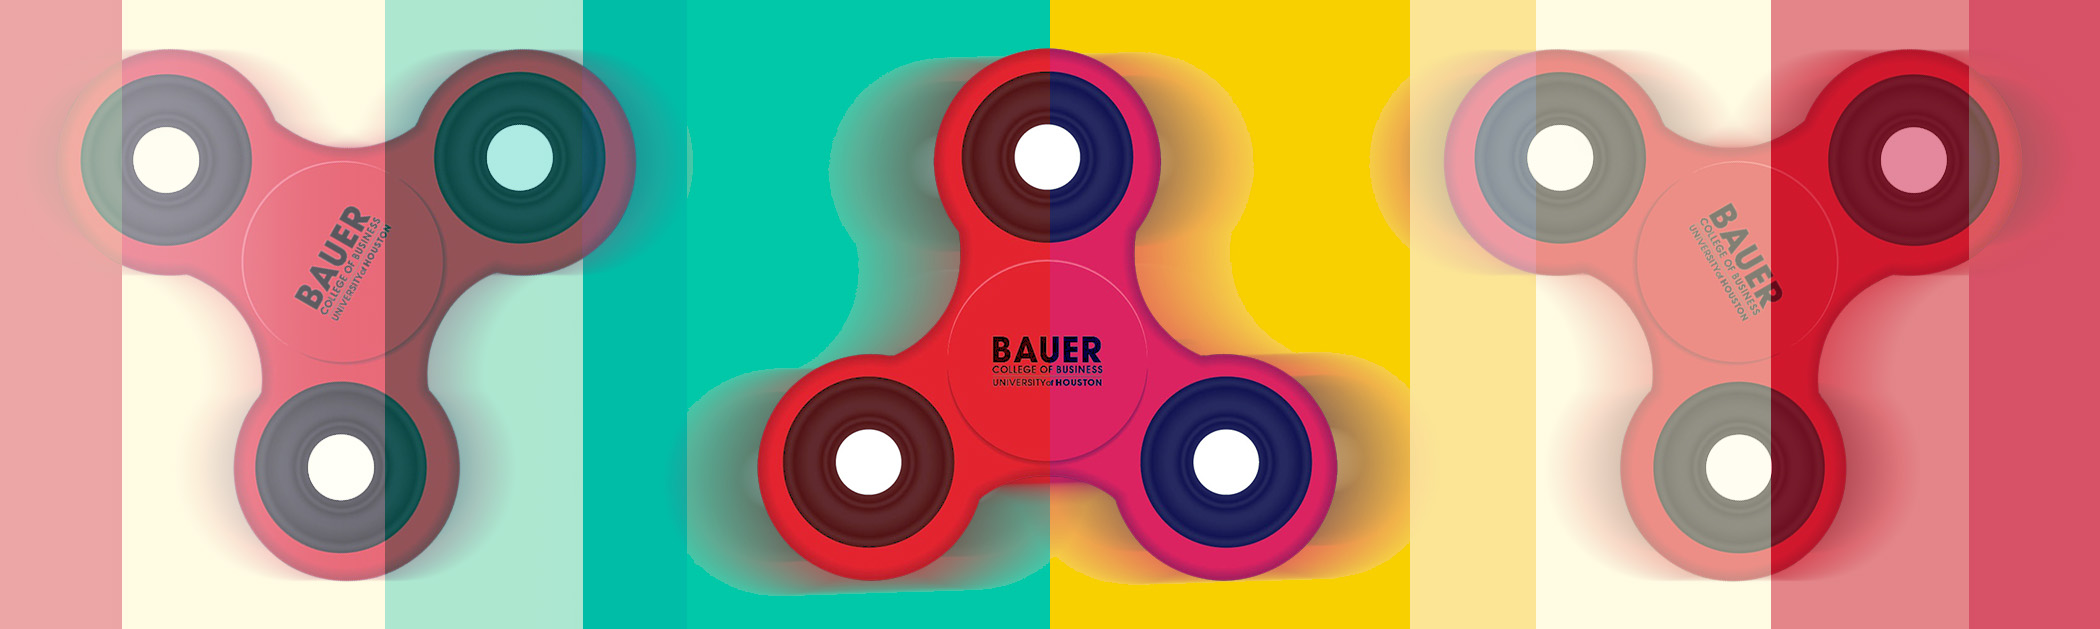 Spinners on BauerMerch.com